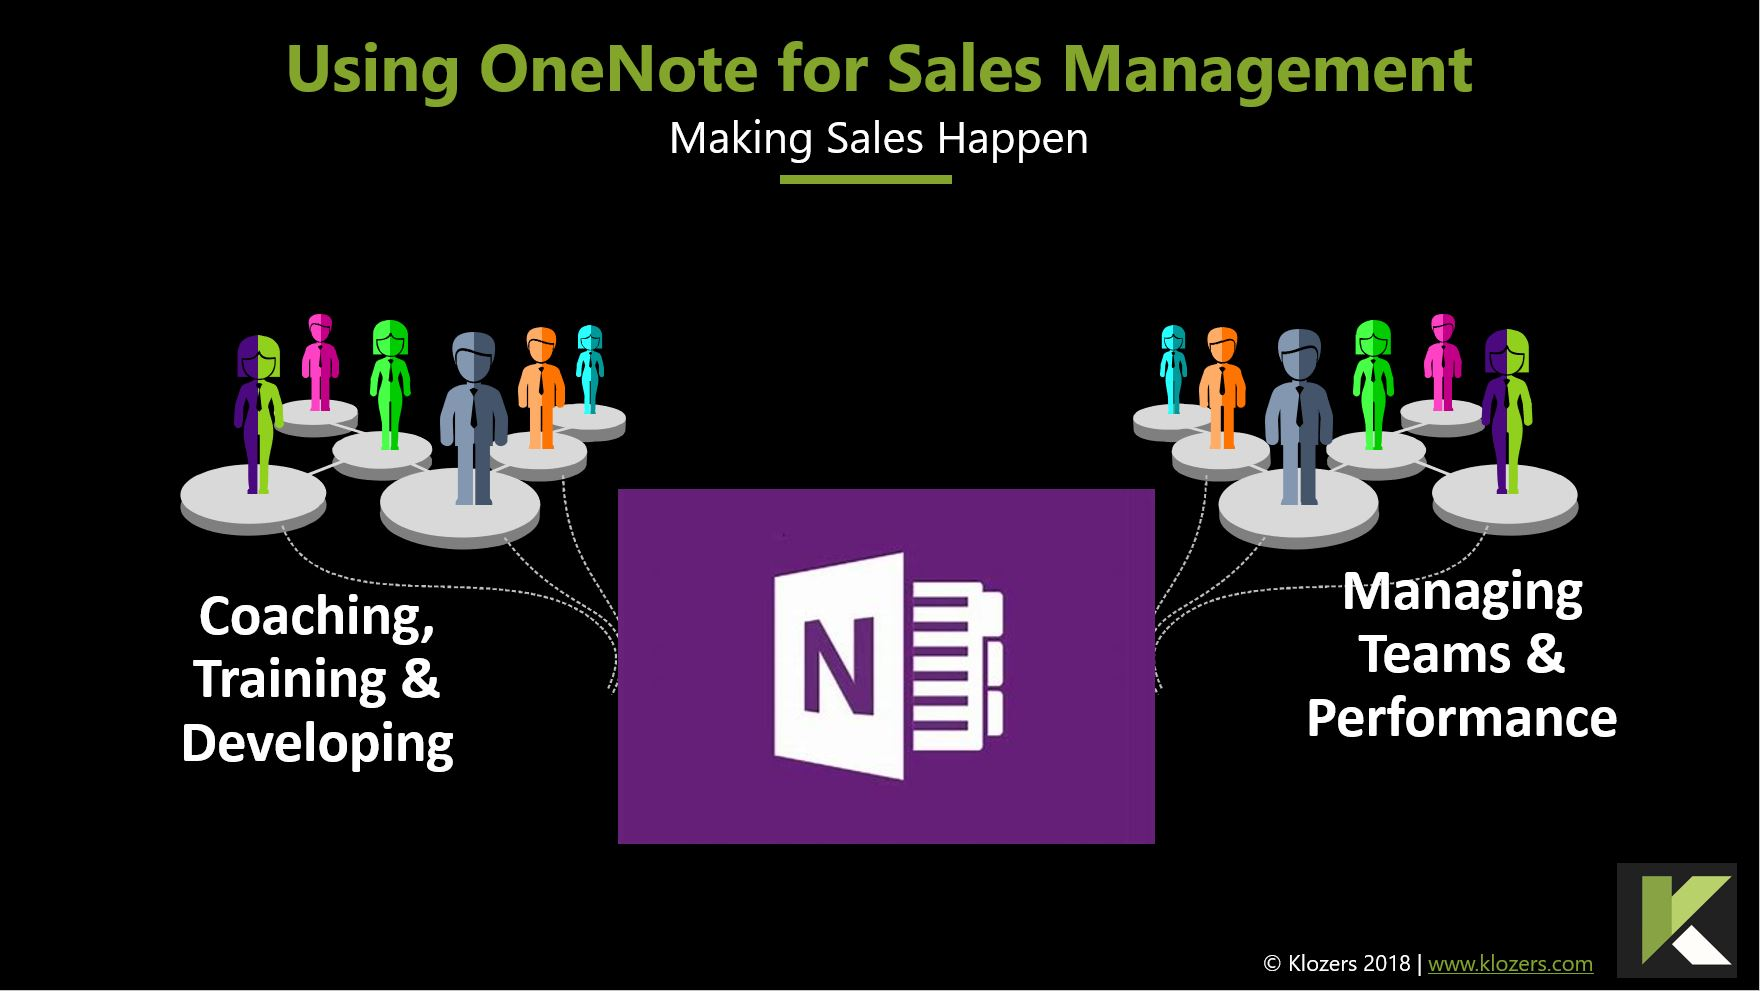 Using OneNote for Sales Management